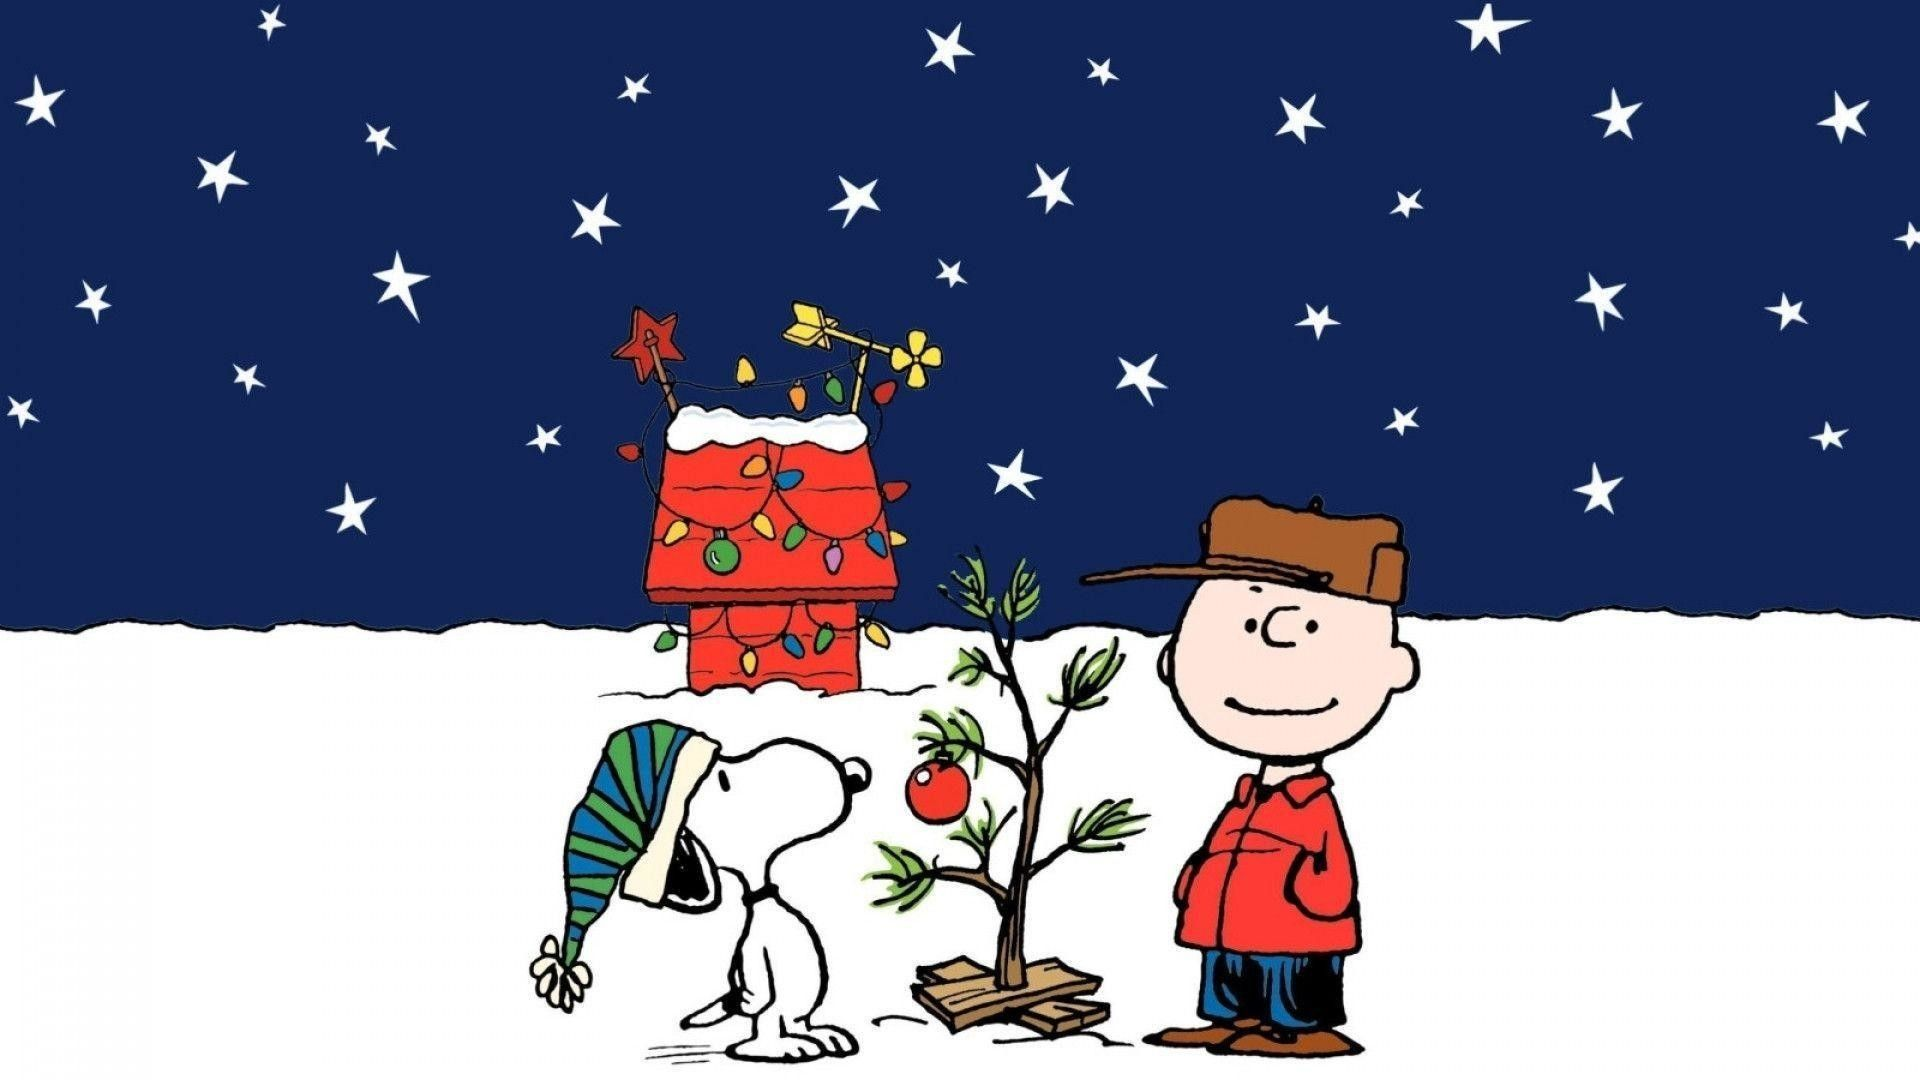 Res 1920x1080 Snoopy Thanksgiving Hd Wallpaper Beraplan Merry Christmas Wallpaper Snoopy Christmas Charlie Brown Christmas Tree